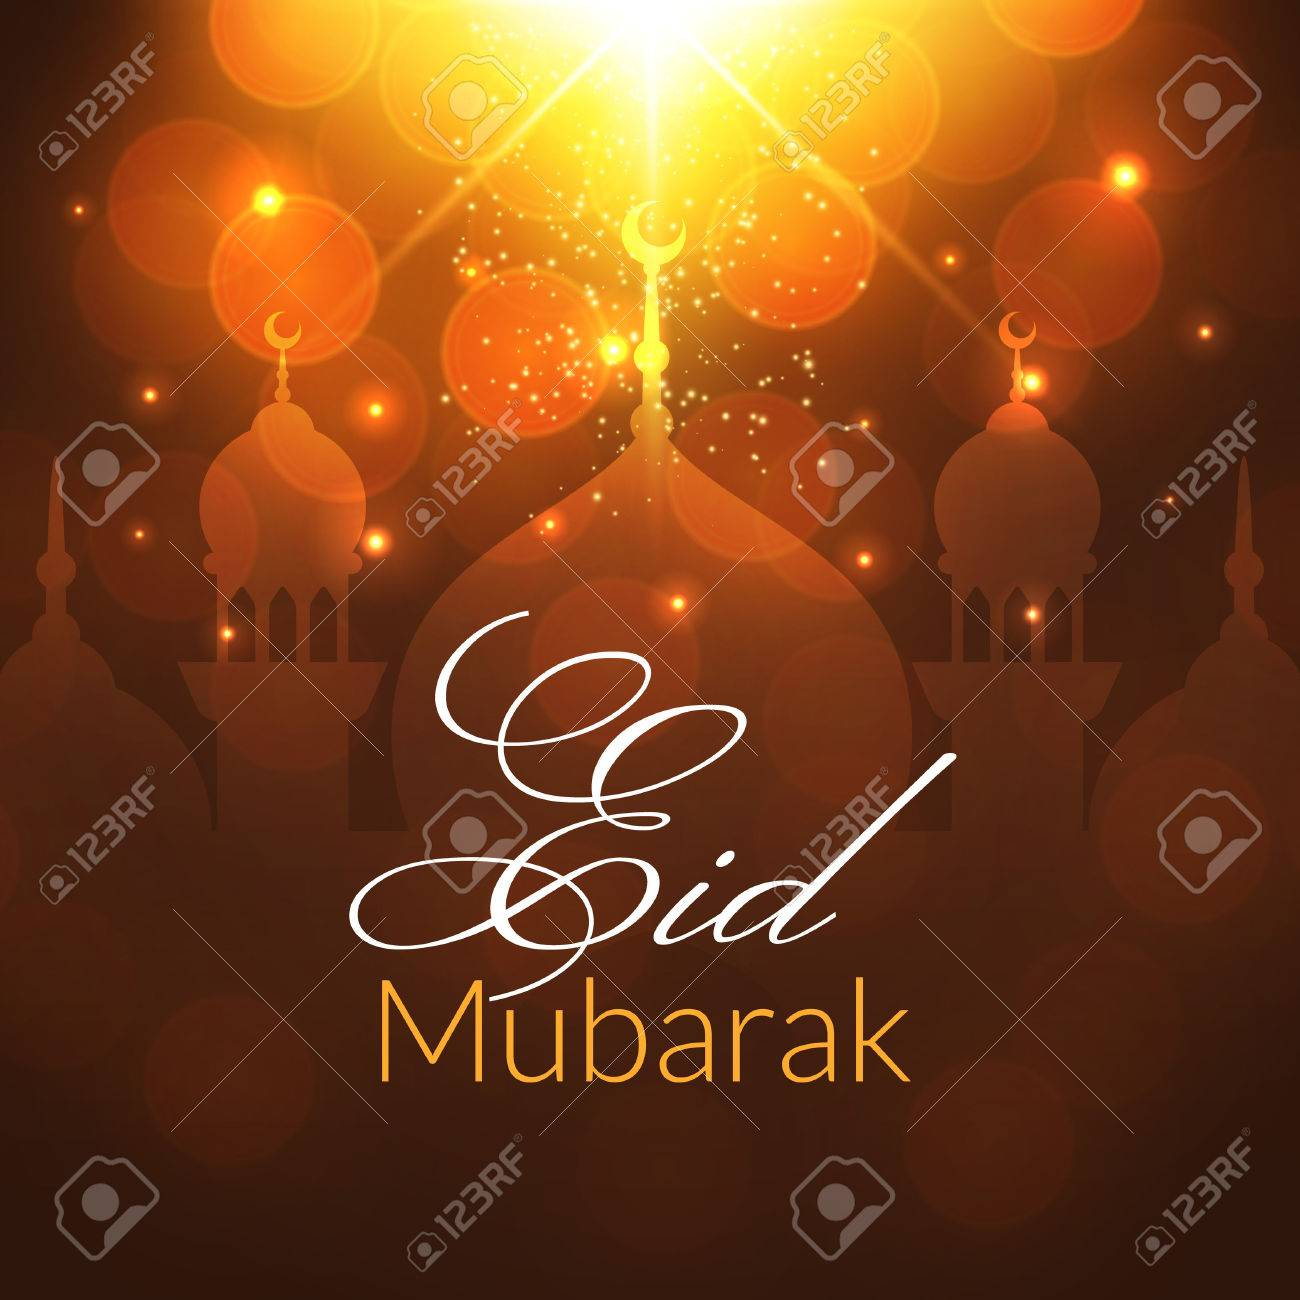 Eid mubarak greeting card with mosque and lights vector festive eid mubarak greeting card with mosque and lights vector festive islamic background stock vector kristyandbryce Choice Image